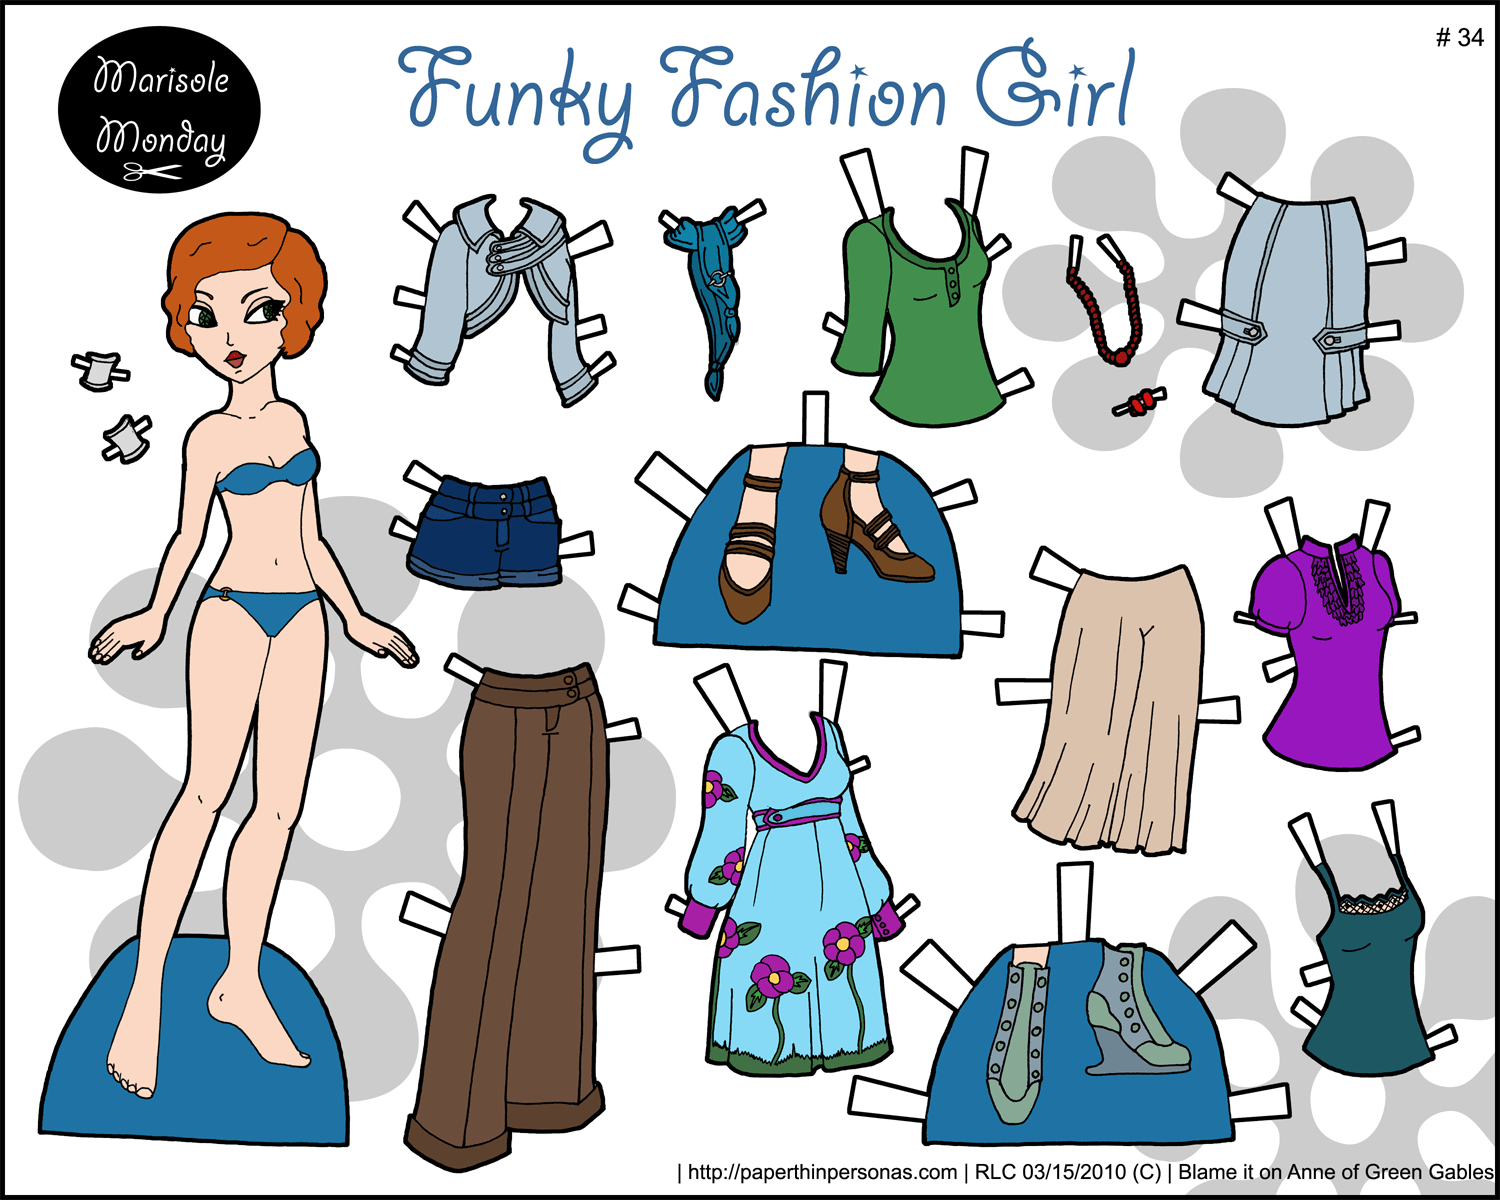 photograph regarding Paper Doll Clothing Printable named Funky Design Lady: Printable Paper Doll Paper Skinny Personas